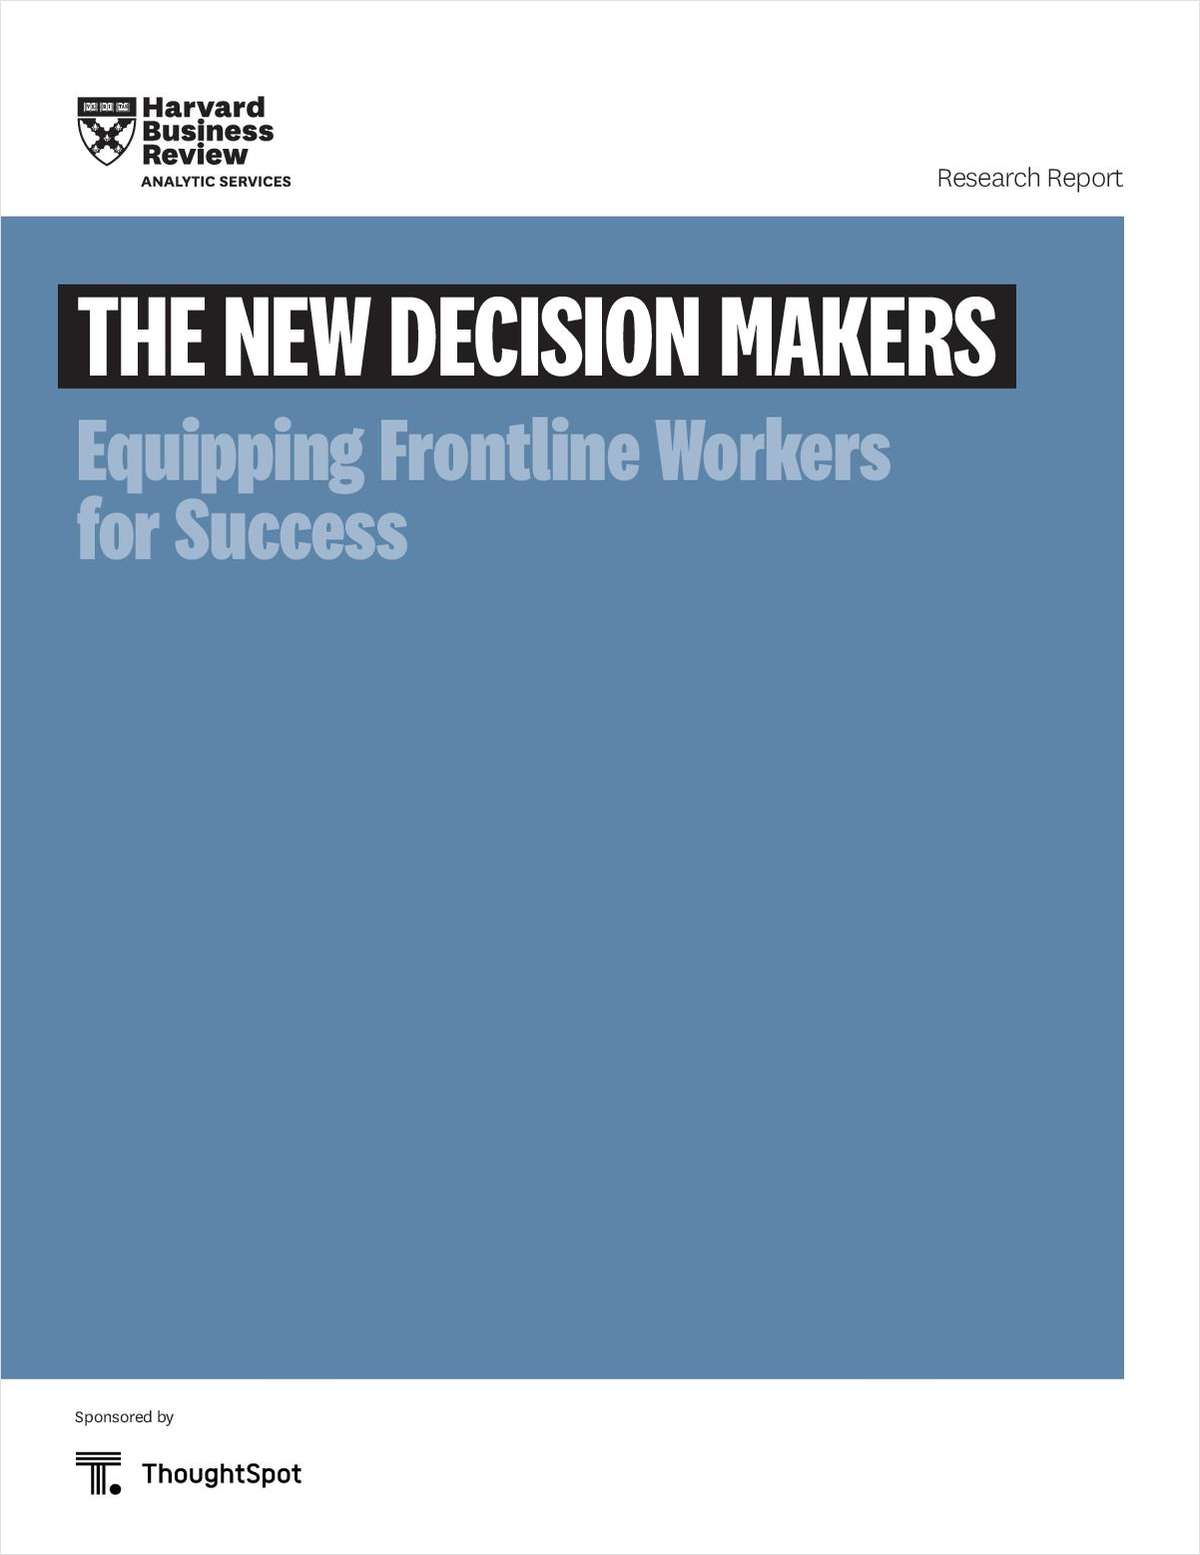 The New Decision Makers Equipping Frontline Workers for Success